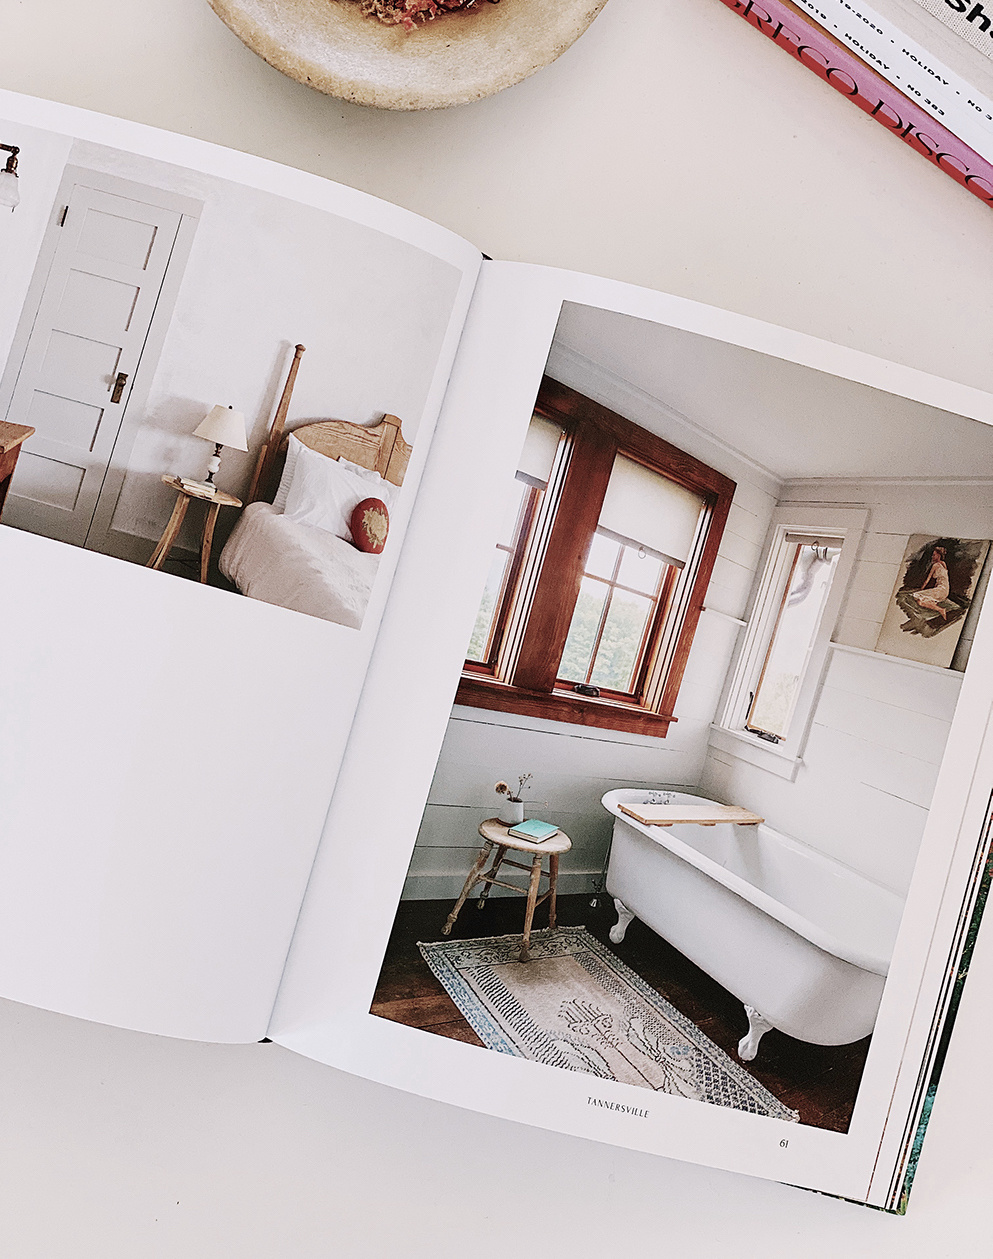 Upstate: Living Spaces with Space to Live, by Lisa Przystup with photos by Sarah Elliott, features twelve personal, creative interiors on both sides of the Hudson River. Book photo via SF Girl.